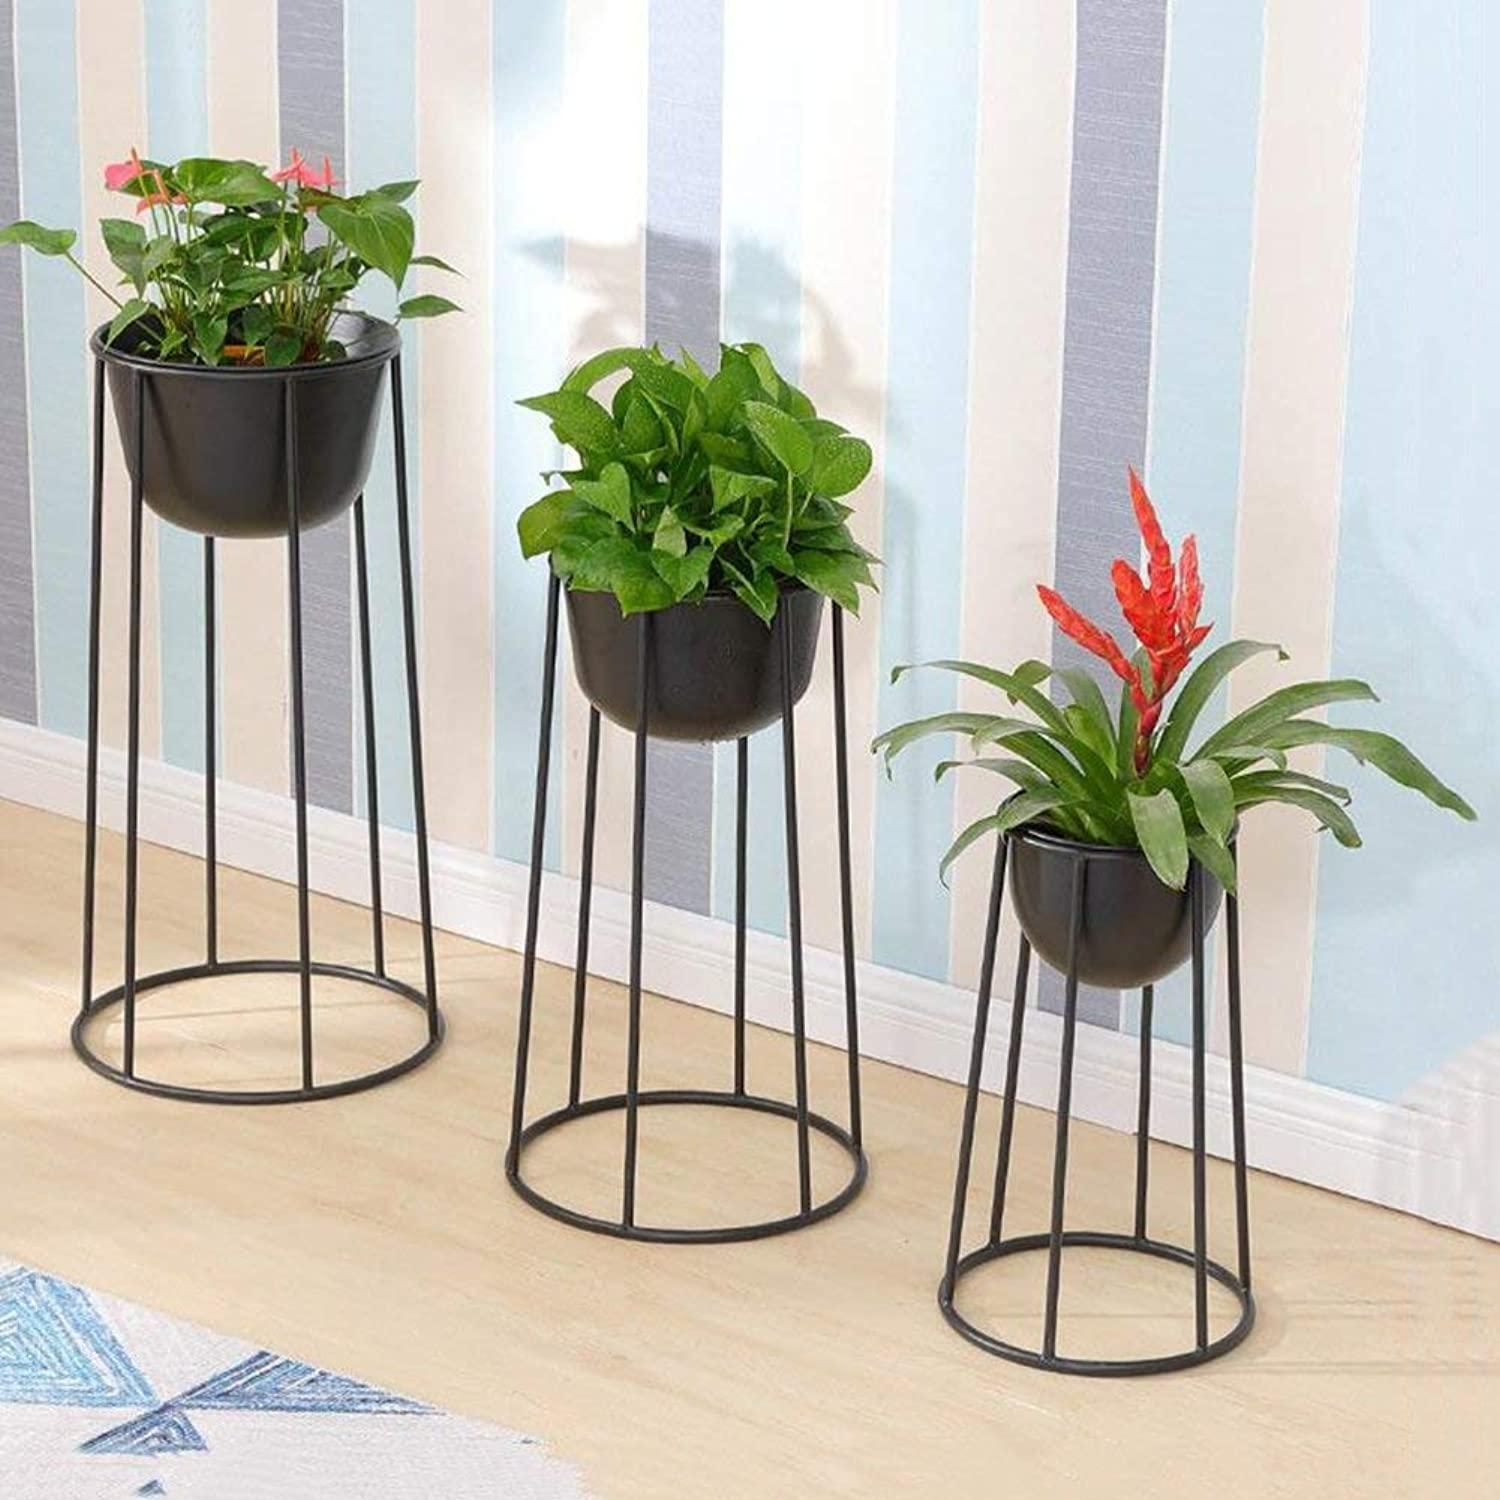 Gifts & Decor Plant Stand Shelf Living Room Art Flower Stand, Living Room Plant Display Stand (Size   SMA)